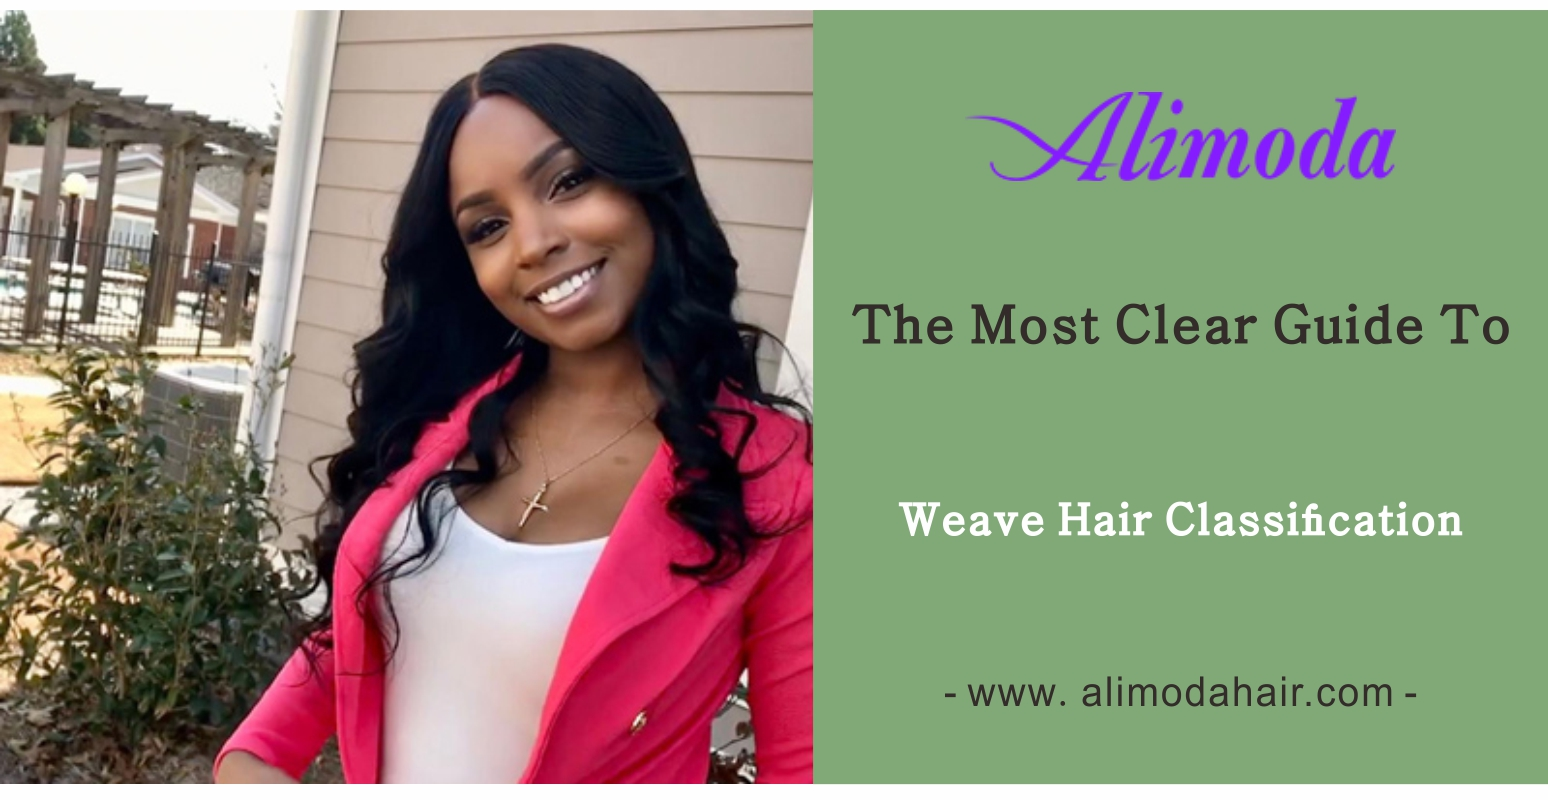 The most clear guide to weave hair classification